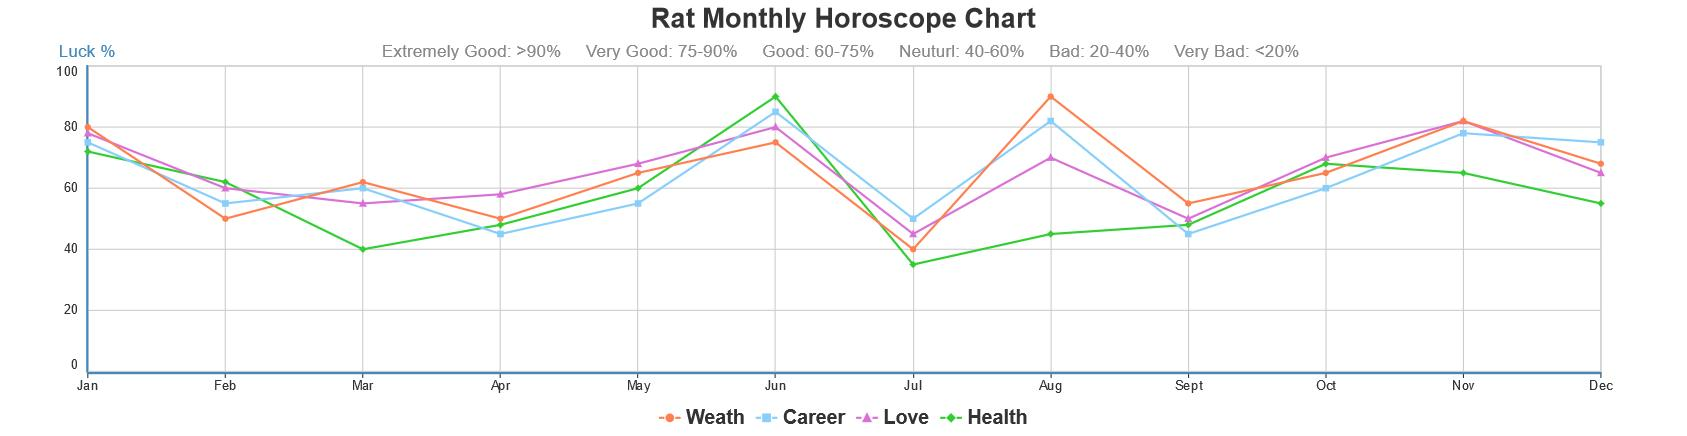 Chinese Horoscope for Rat/Mouse, 2019/2020 Weekly, Yearly and